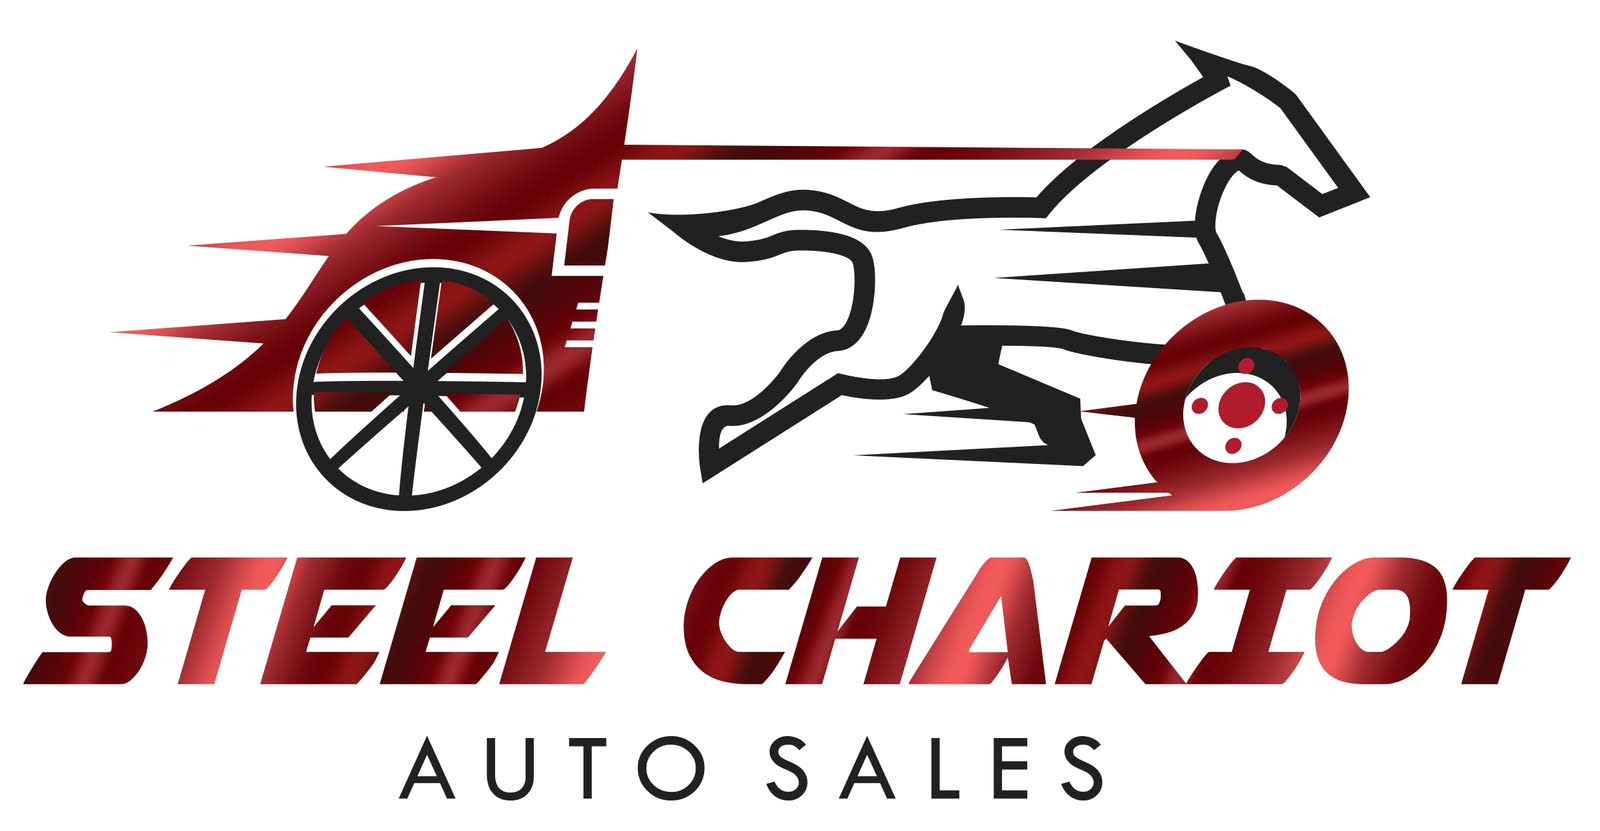 Mercedes Stevens Creek >> Steel Chariot - San Jose, CA: Read Consumer reviews ...